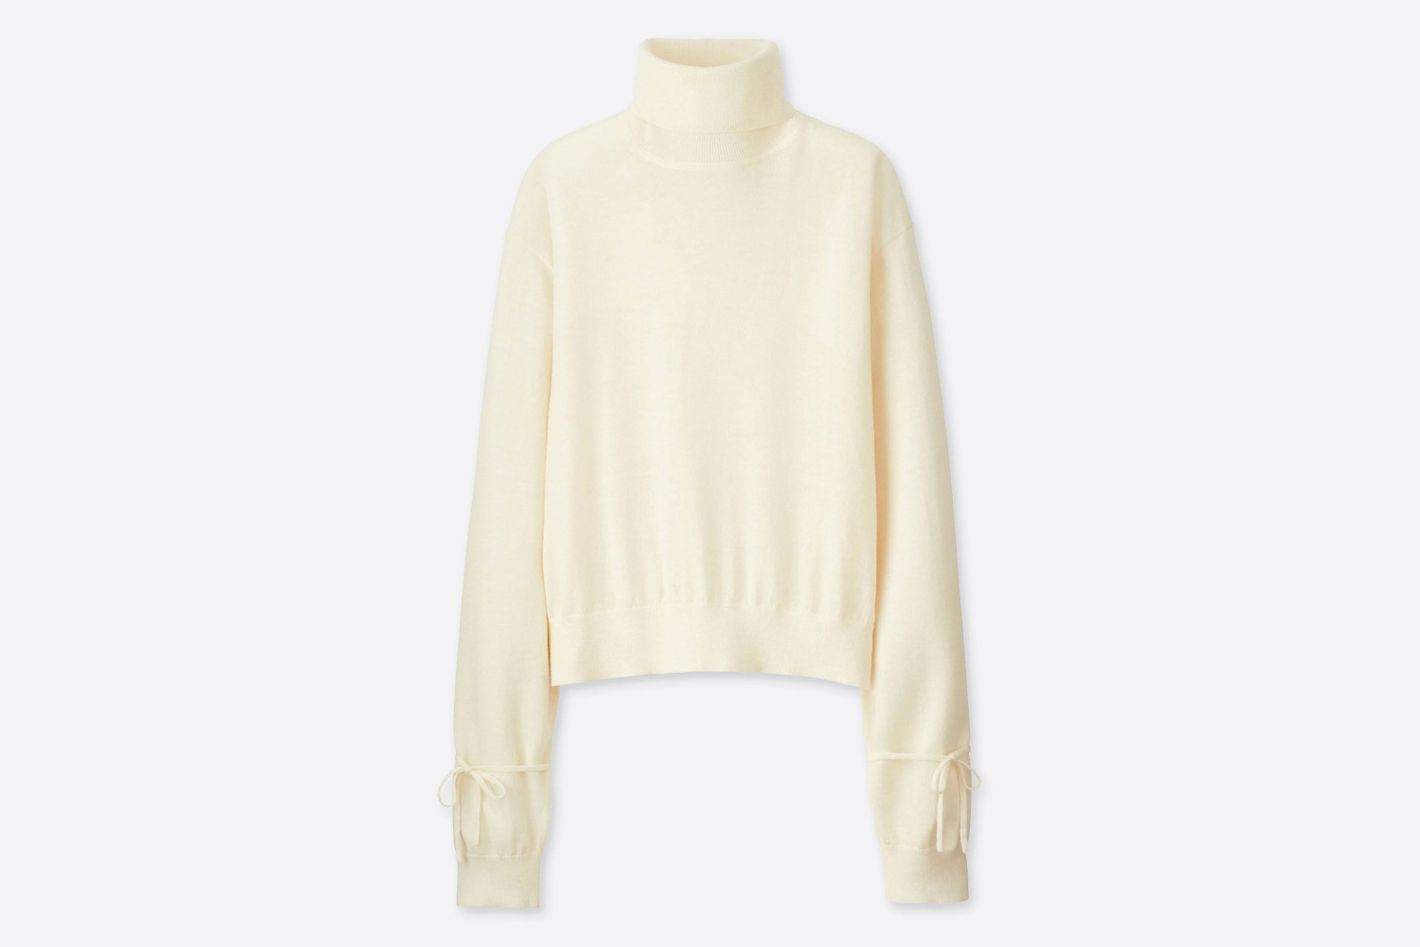 J.W. Anderson x Uniqlo Ivory Oversize Sweater